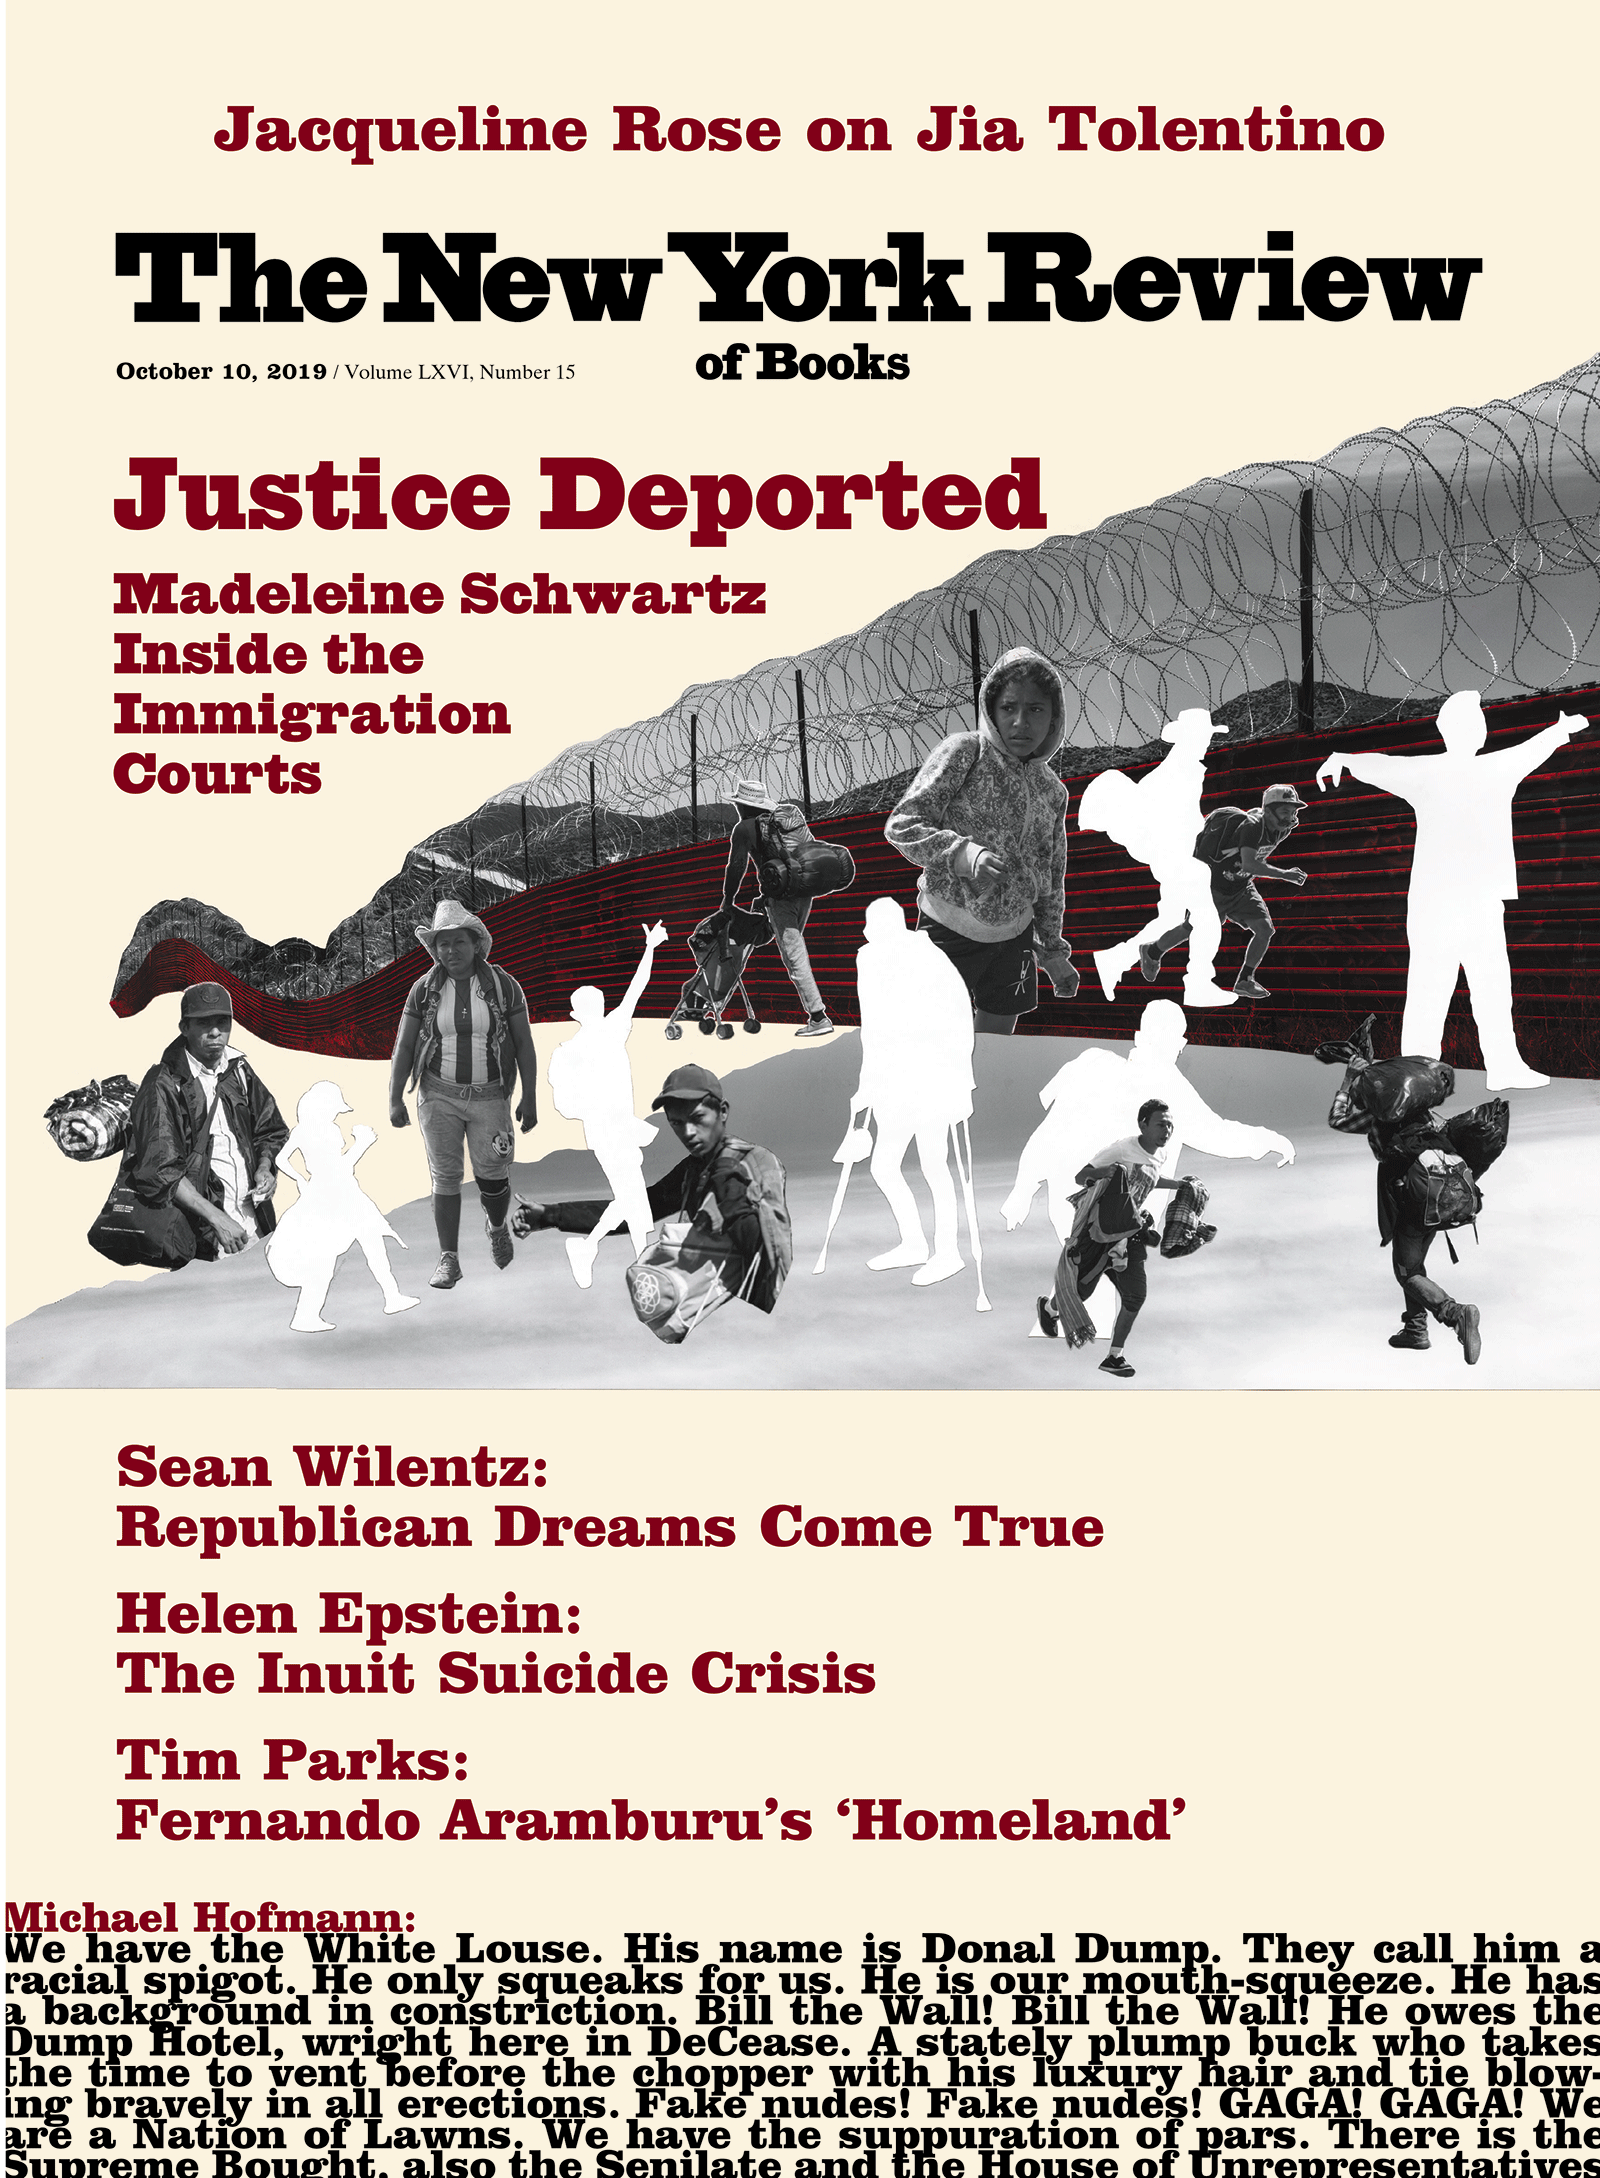 Image of the October 10, 2019 issue cover.